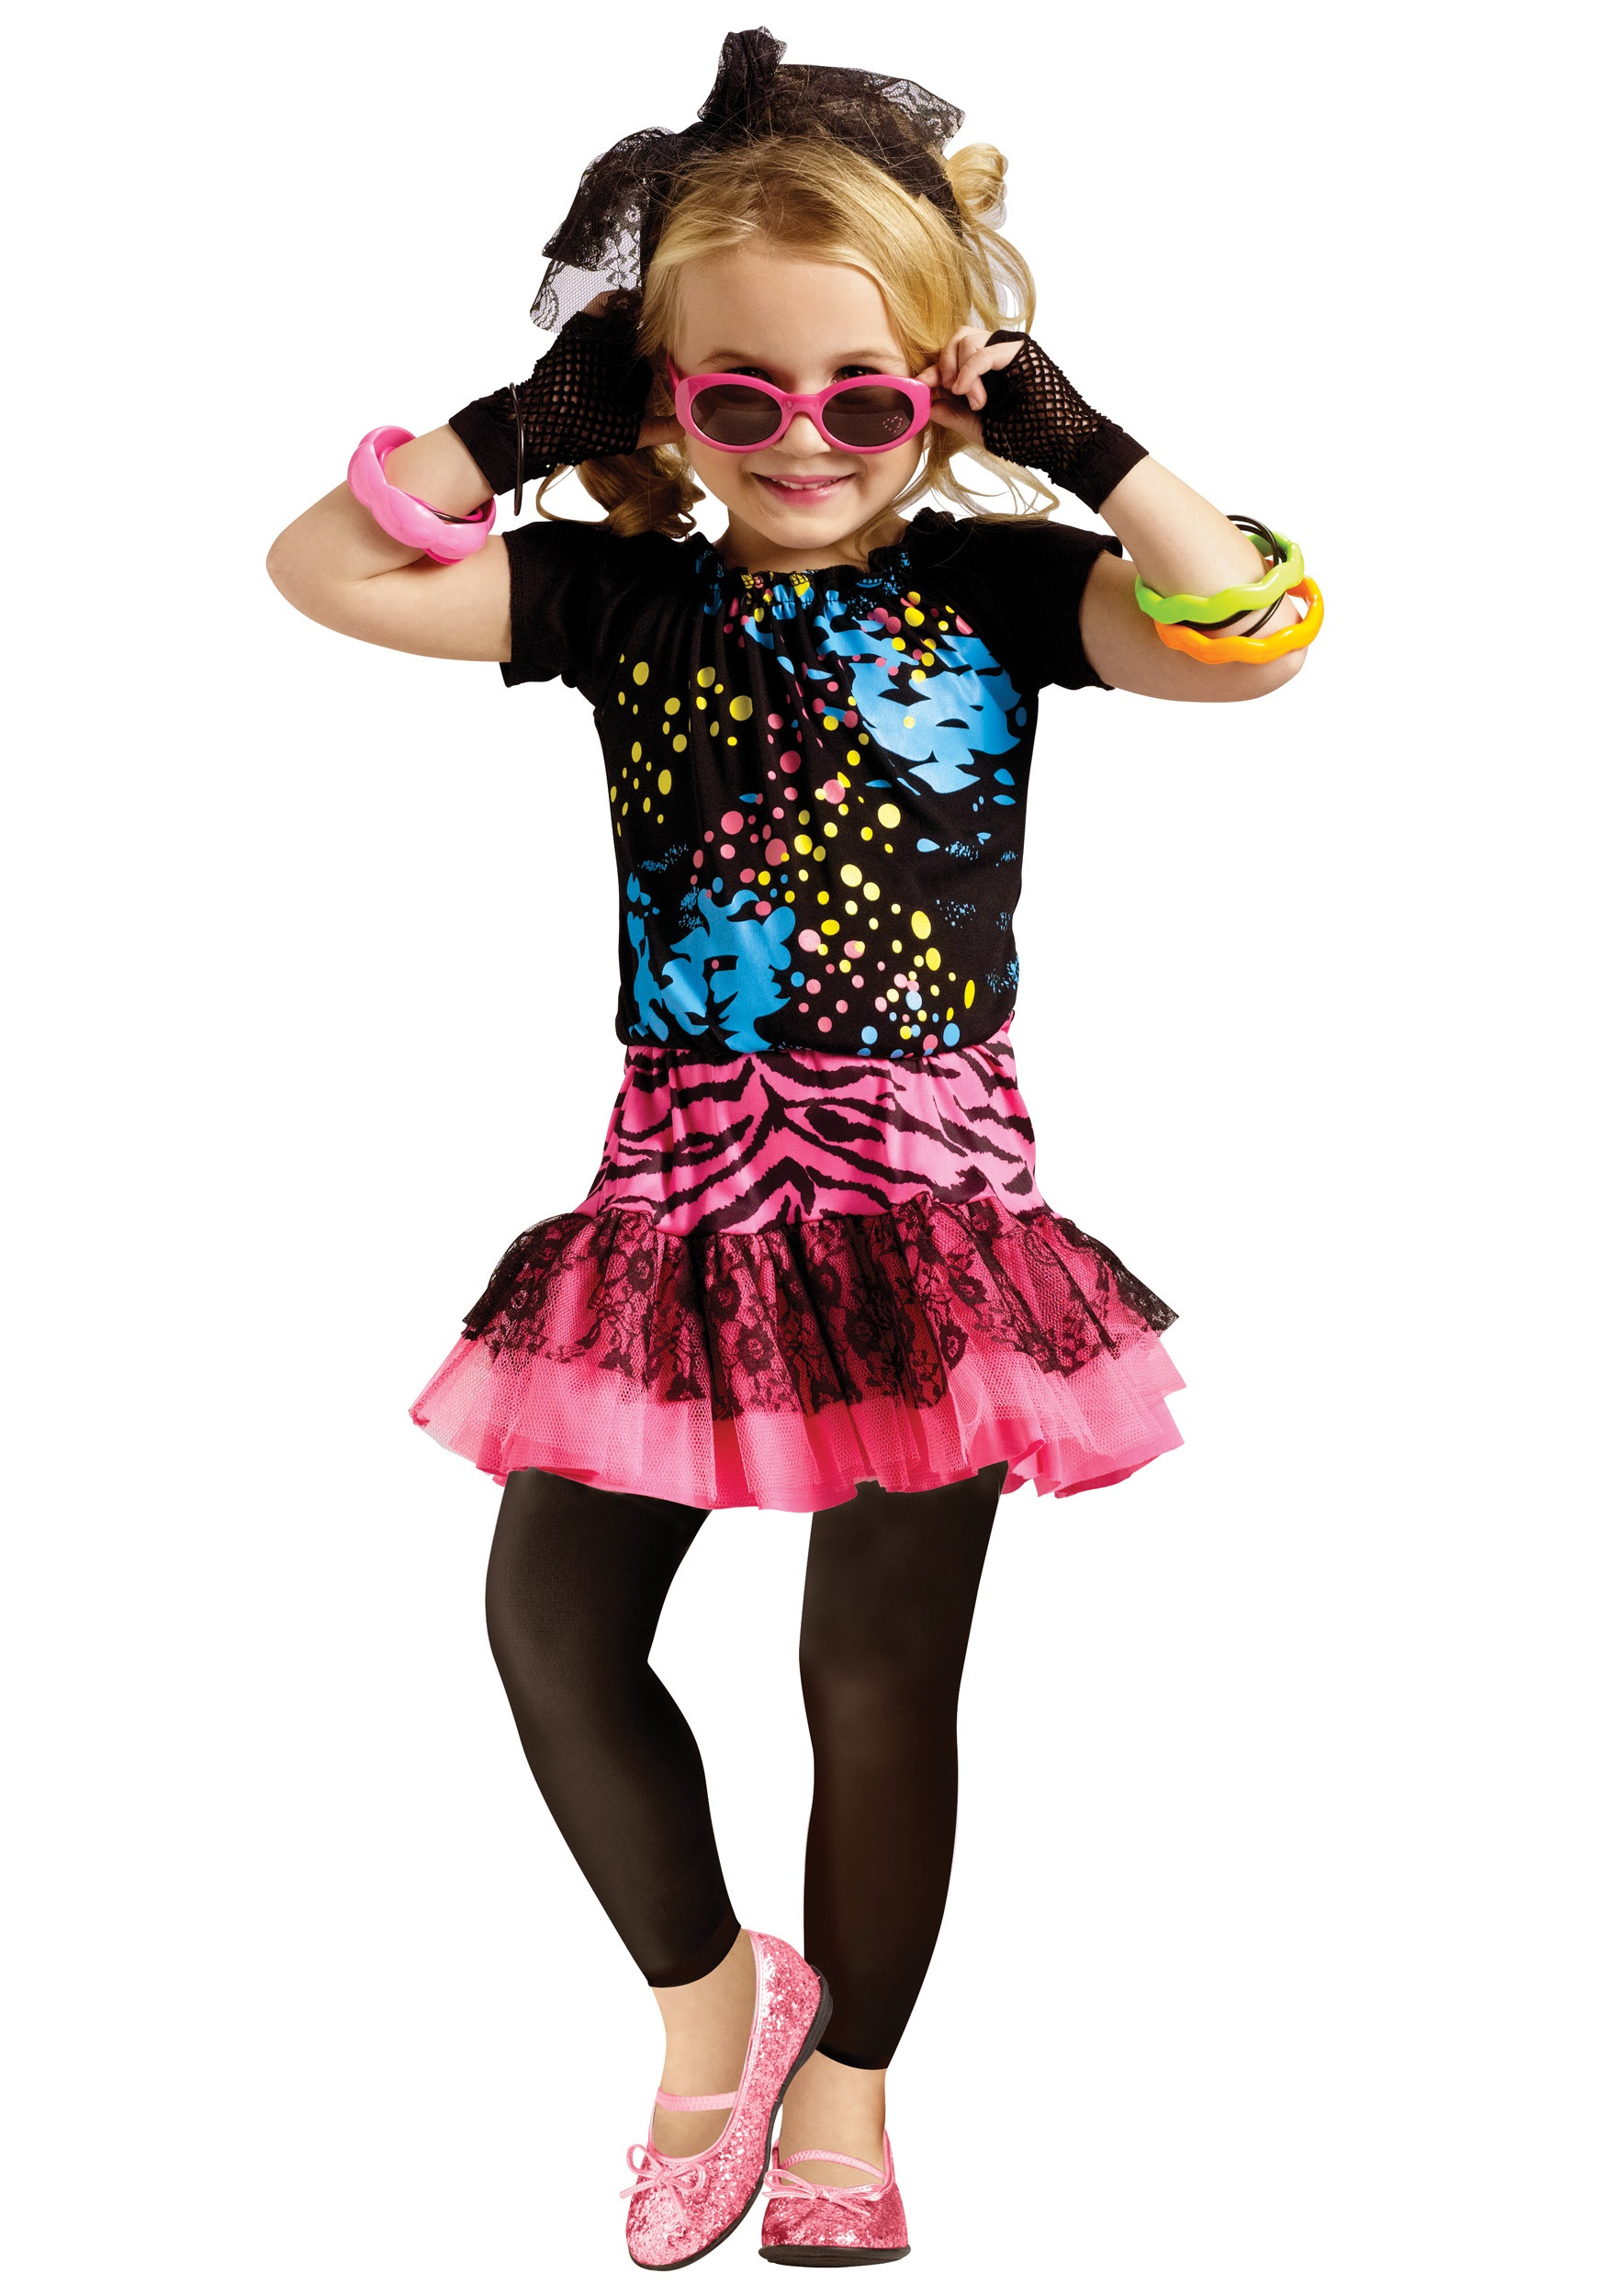 80s Pop Party Toddler Costume Halloween Costume Ideas 2018